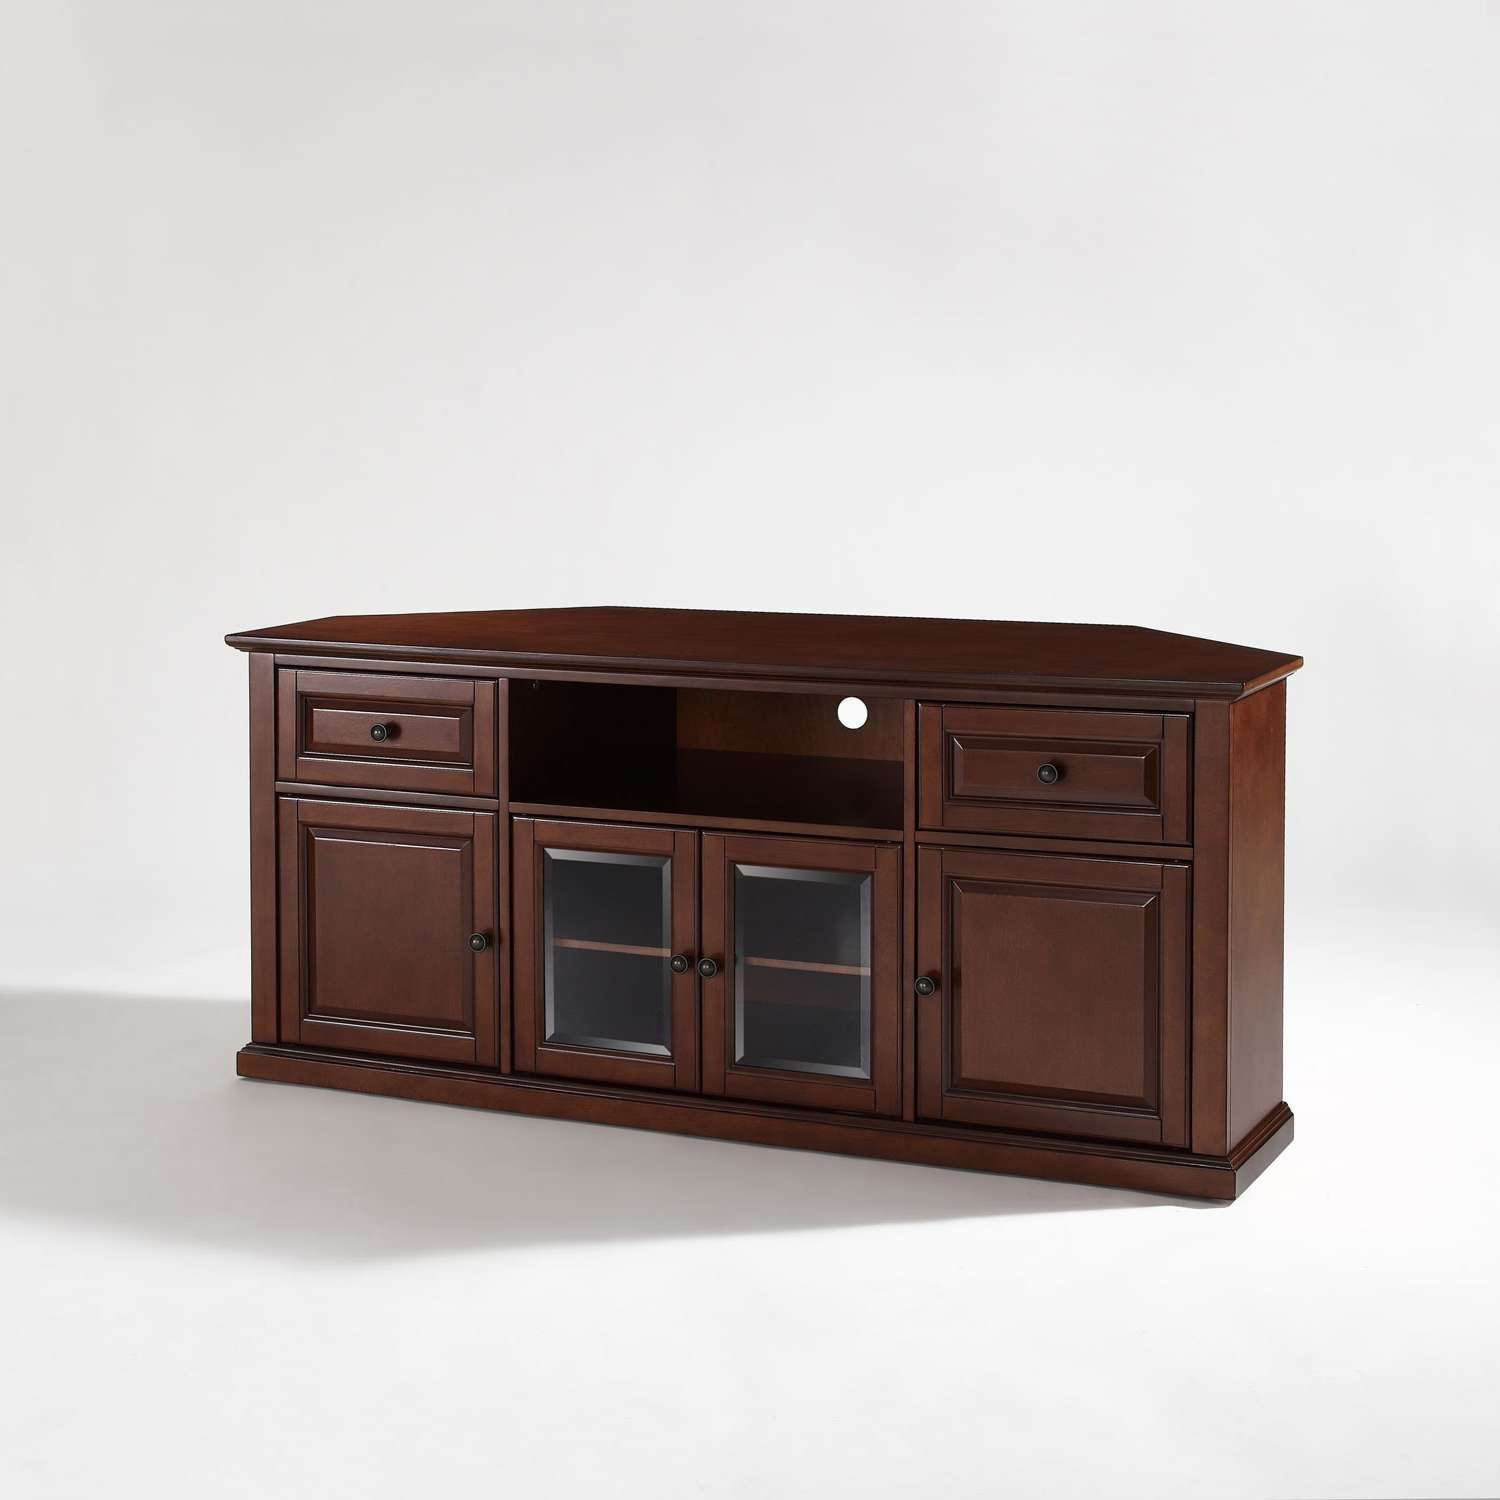 Tv Stands & Cabinets On Sale | Bellacor In Corner Tv Stands For 60 Inch Flat Screens (View 11 of 15)